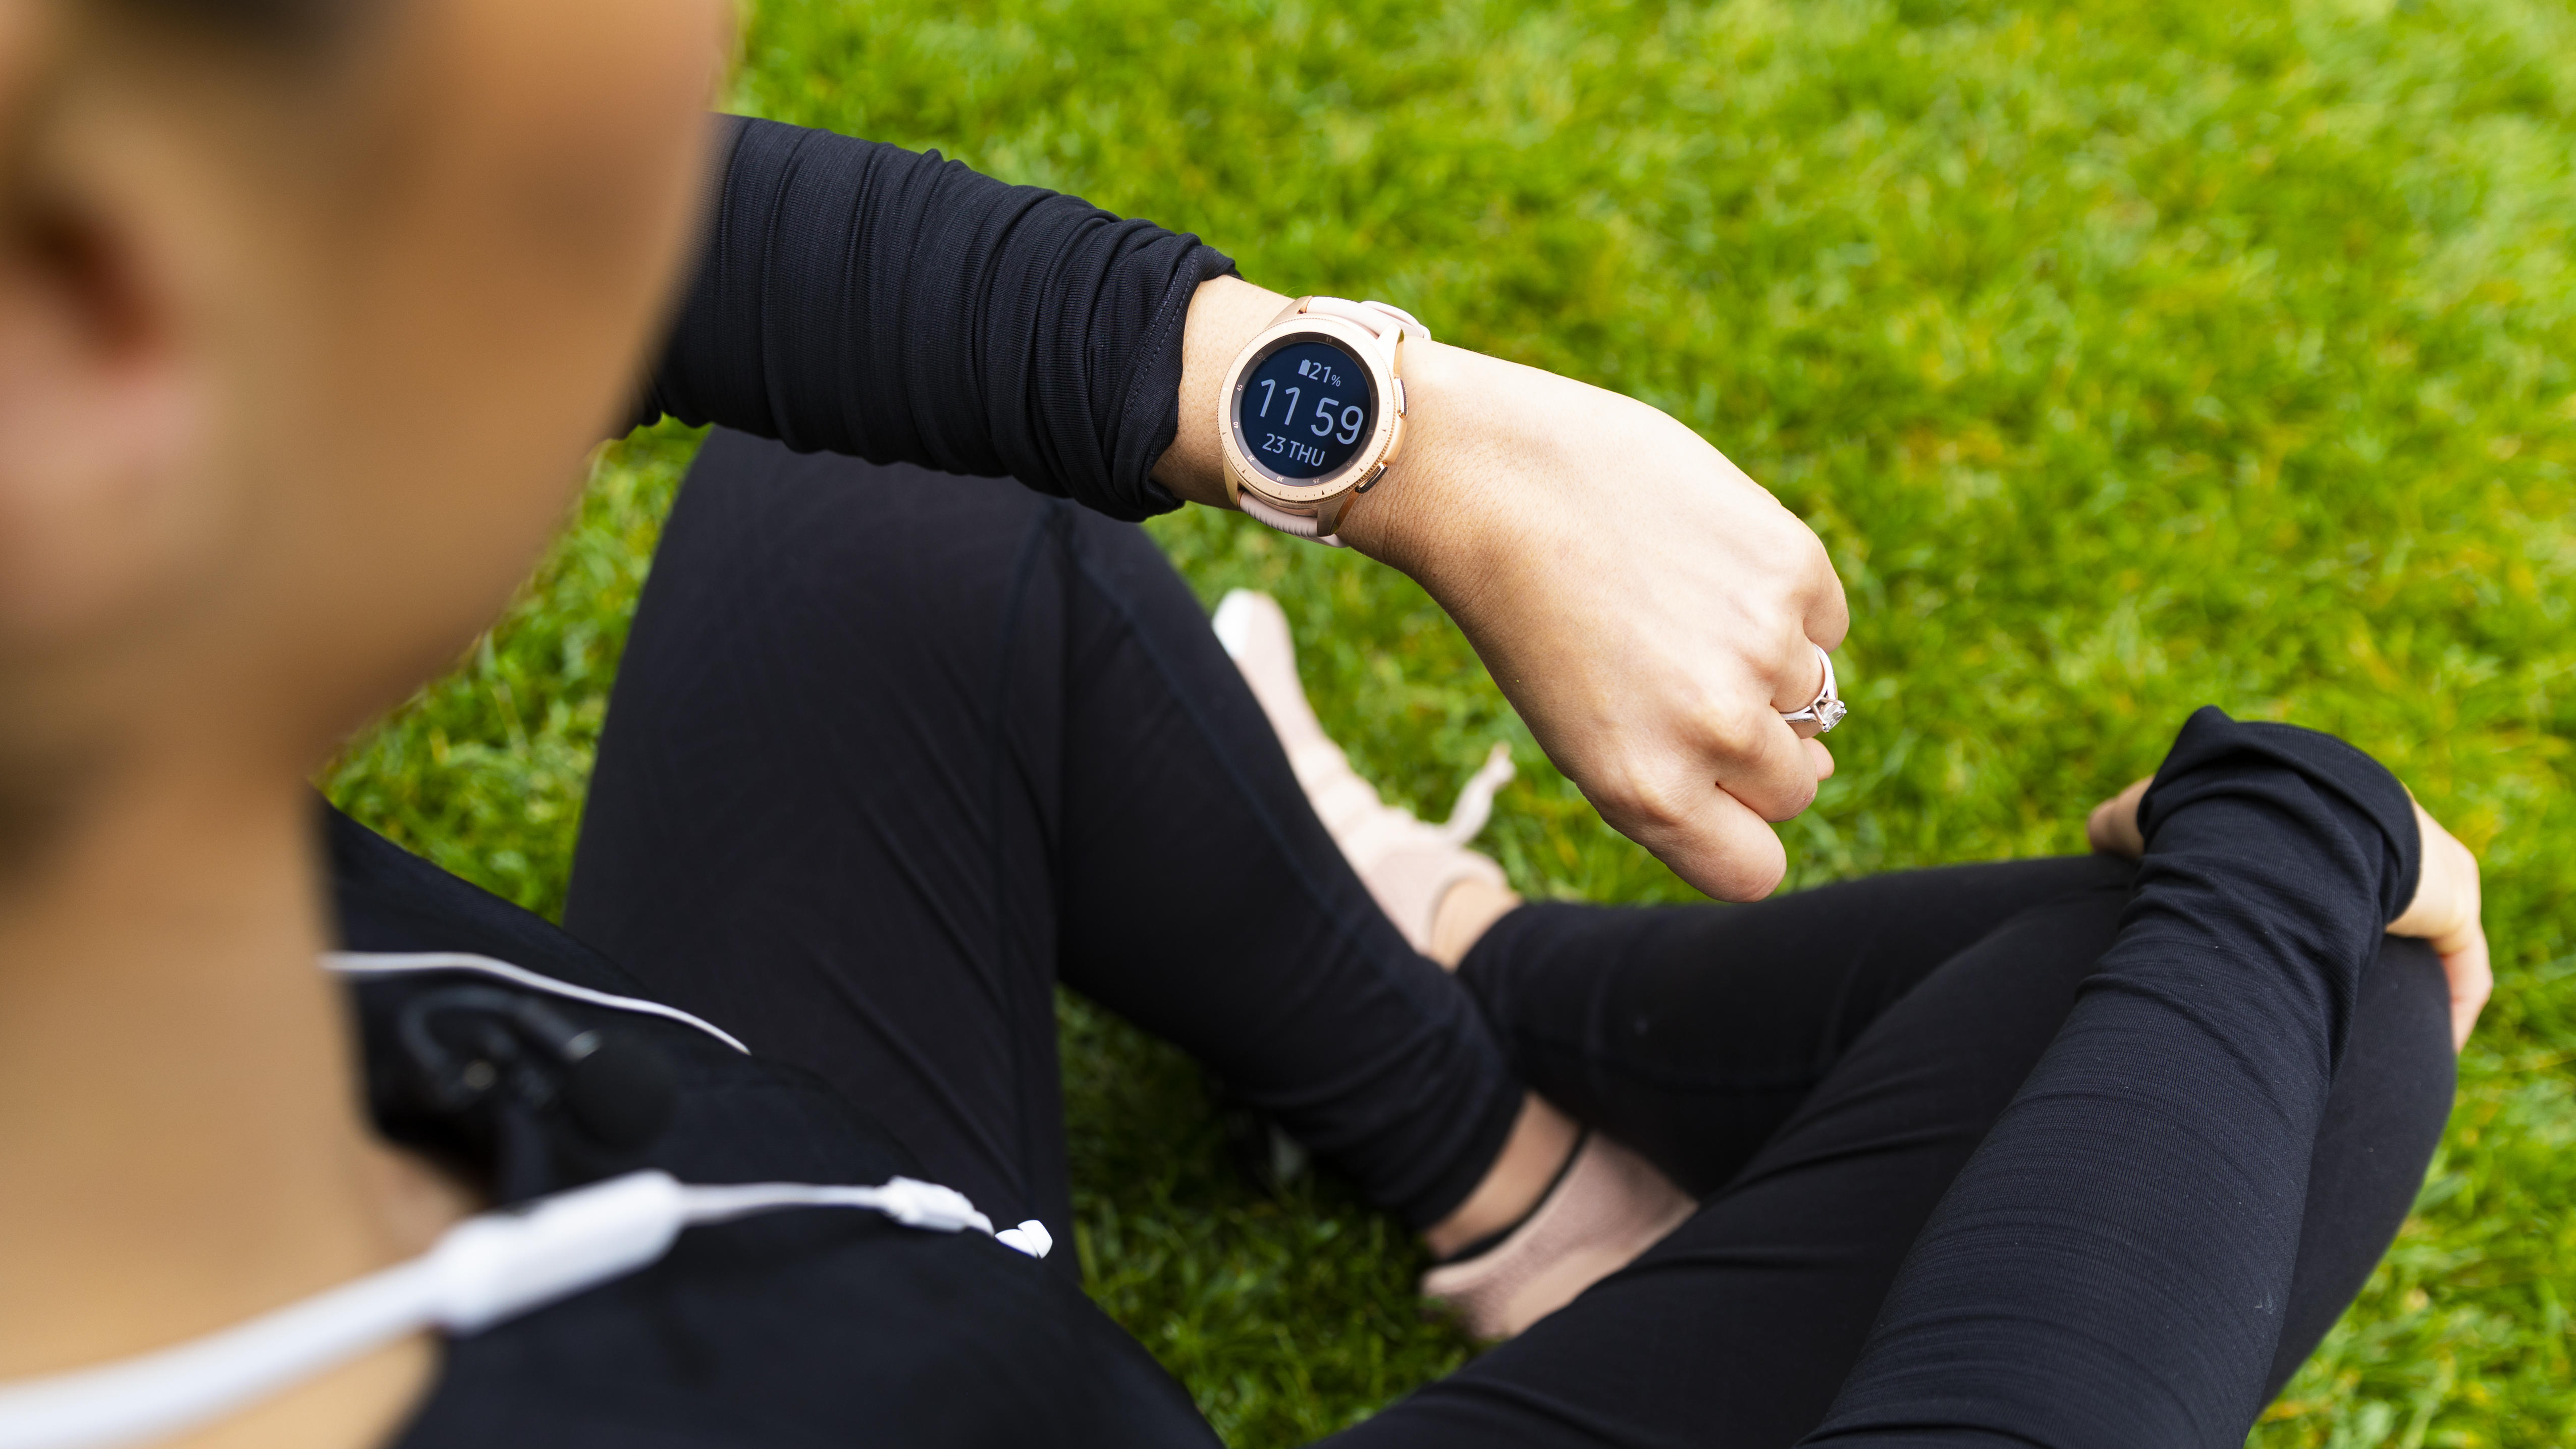 galaxy-watch-fitness-exercise-activity-8556